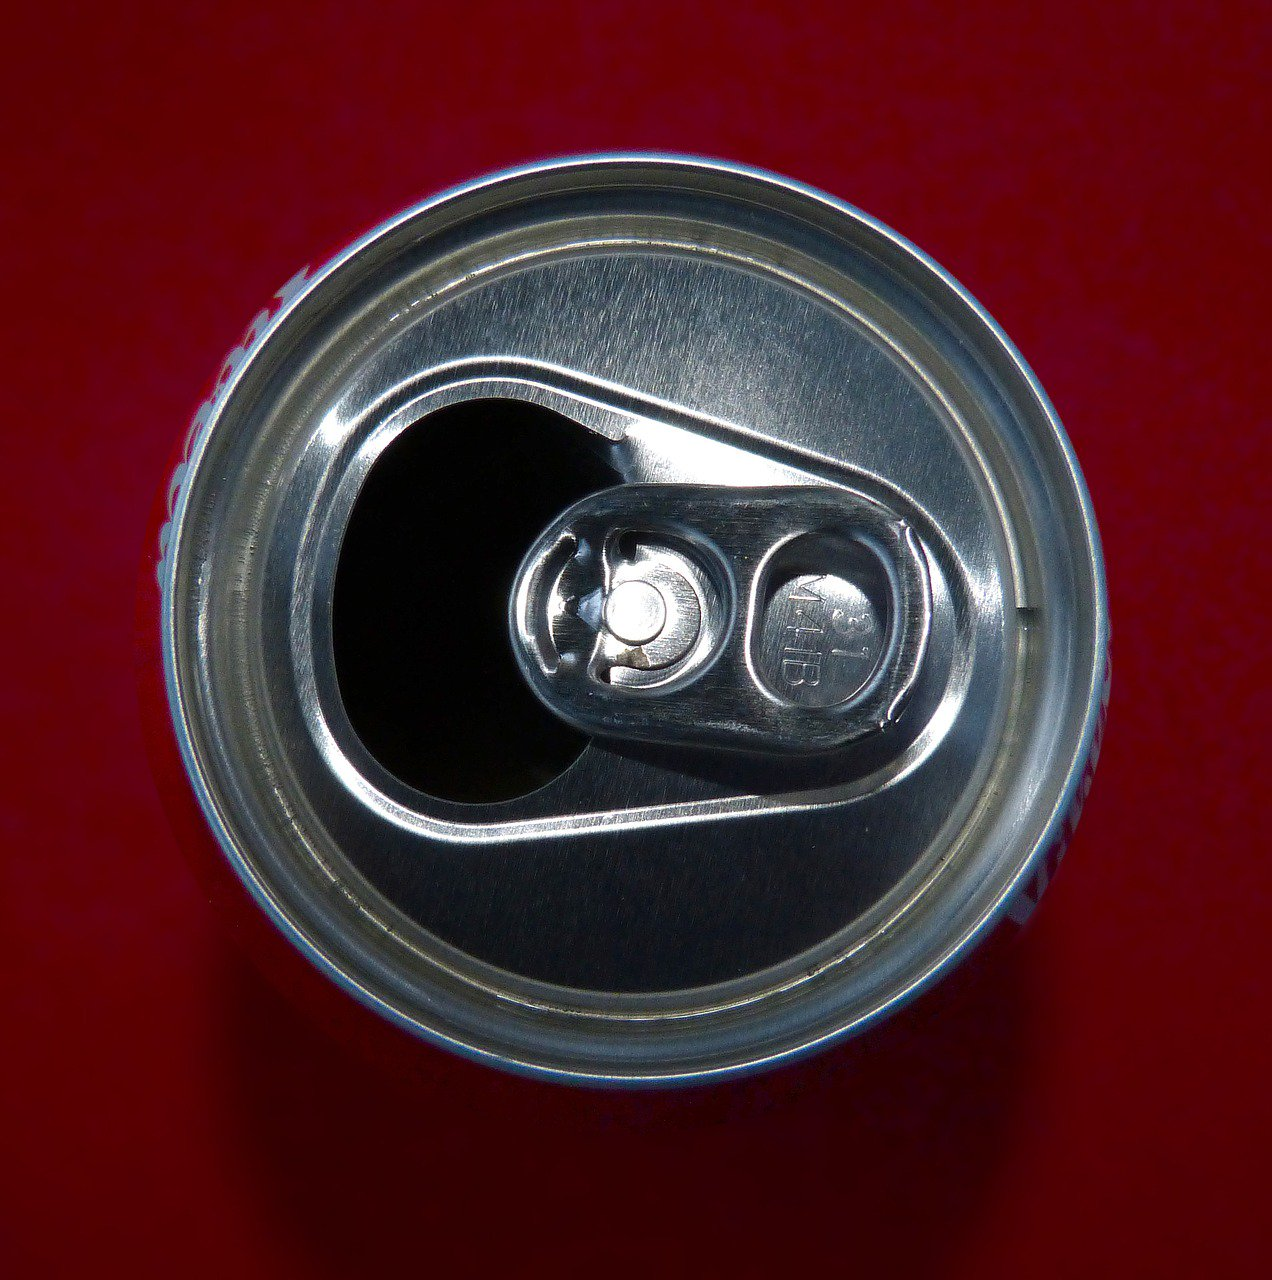 Teen Alcohol Use: Helping Your Kids Resist the Dark Side